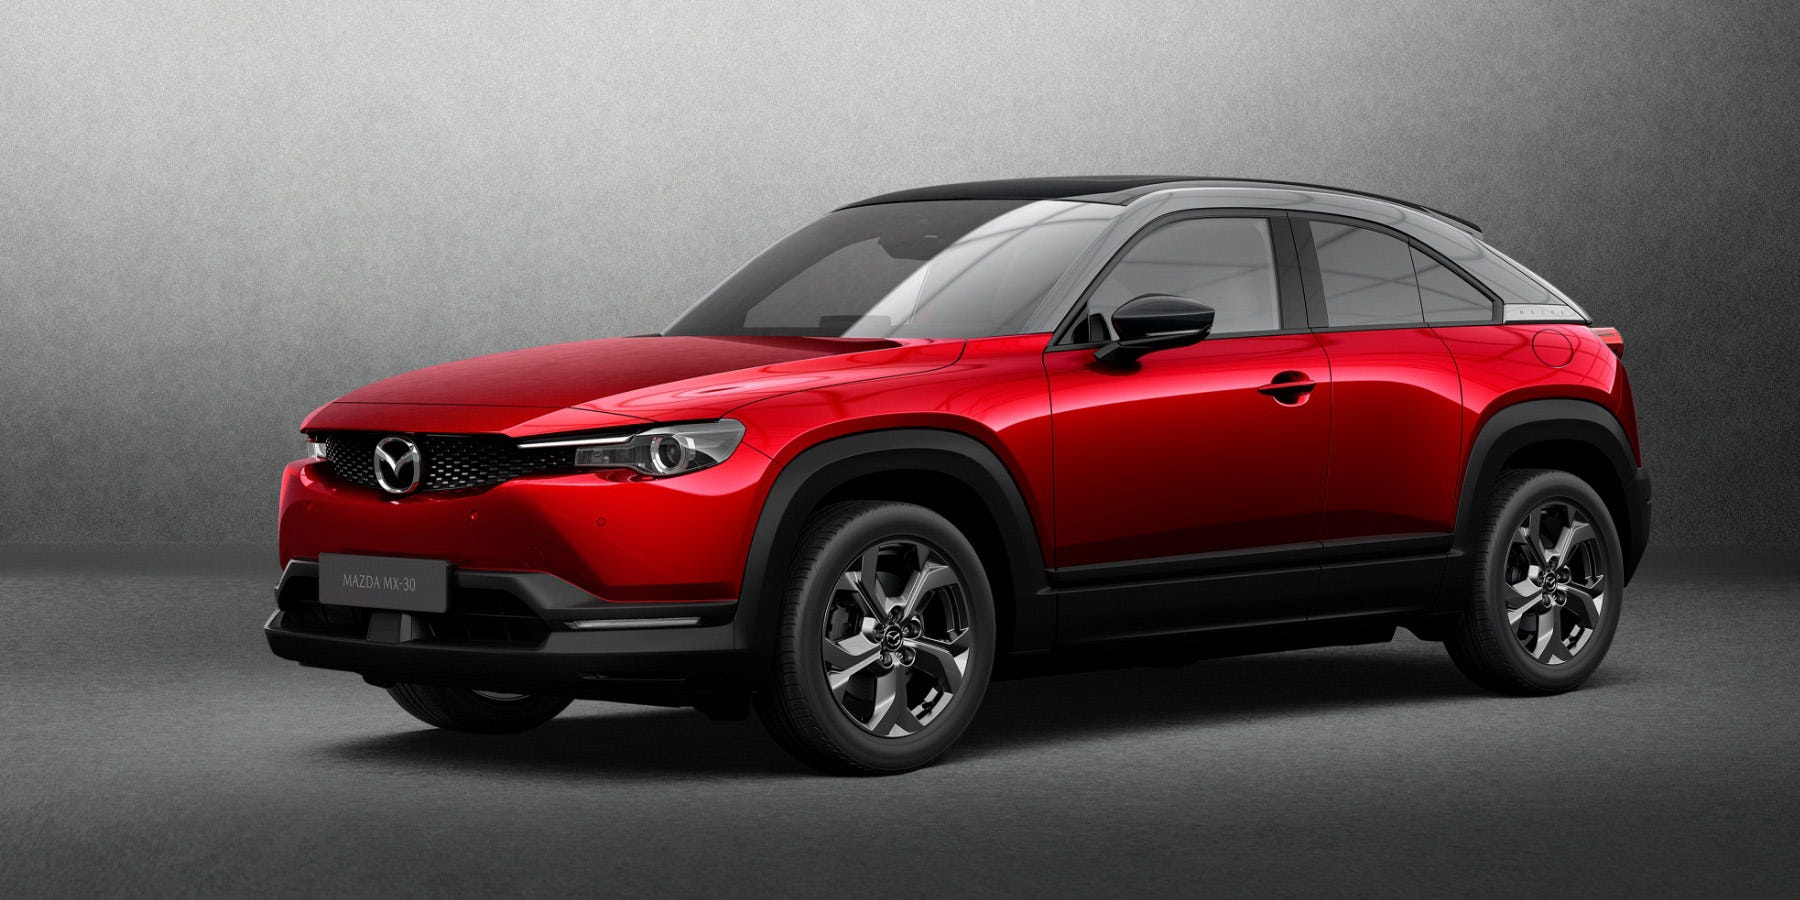 Mazda reveals its first electric vehicle: meet the Mazda MX-30